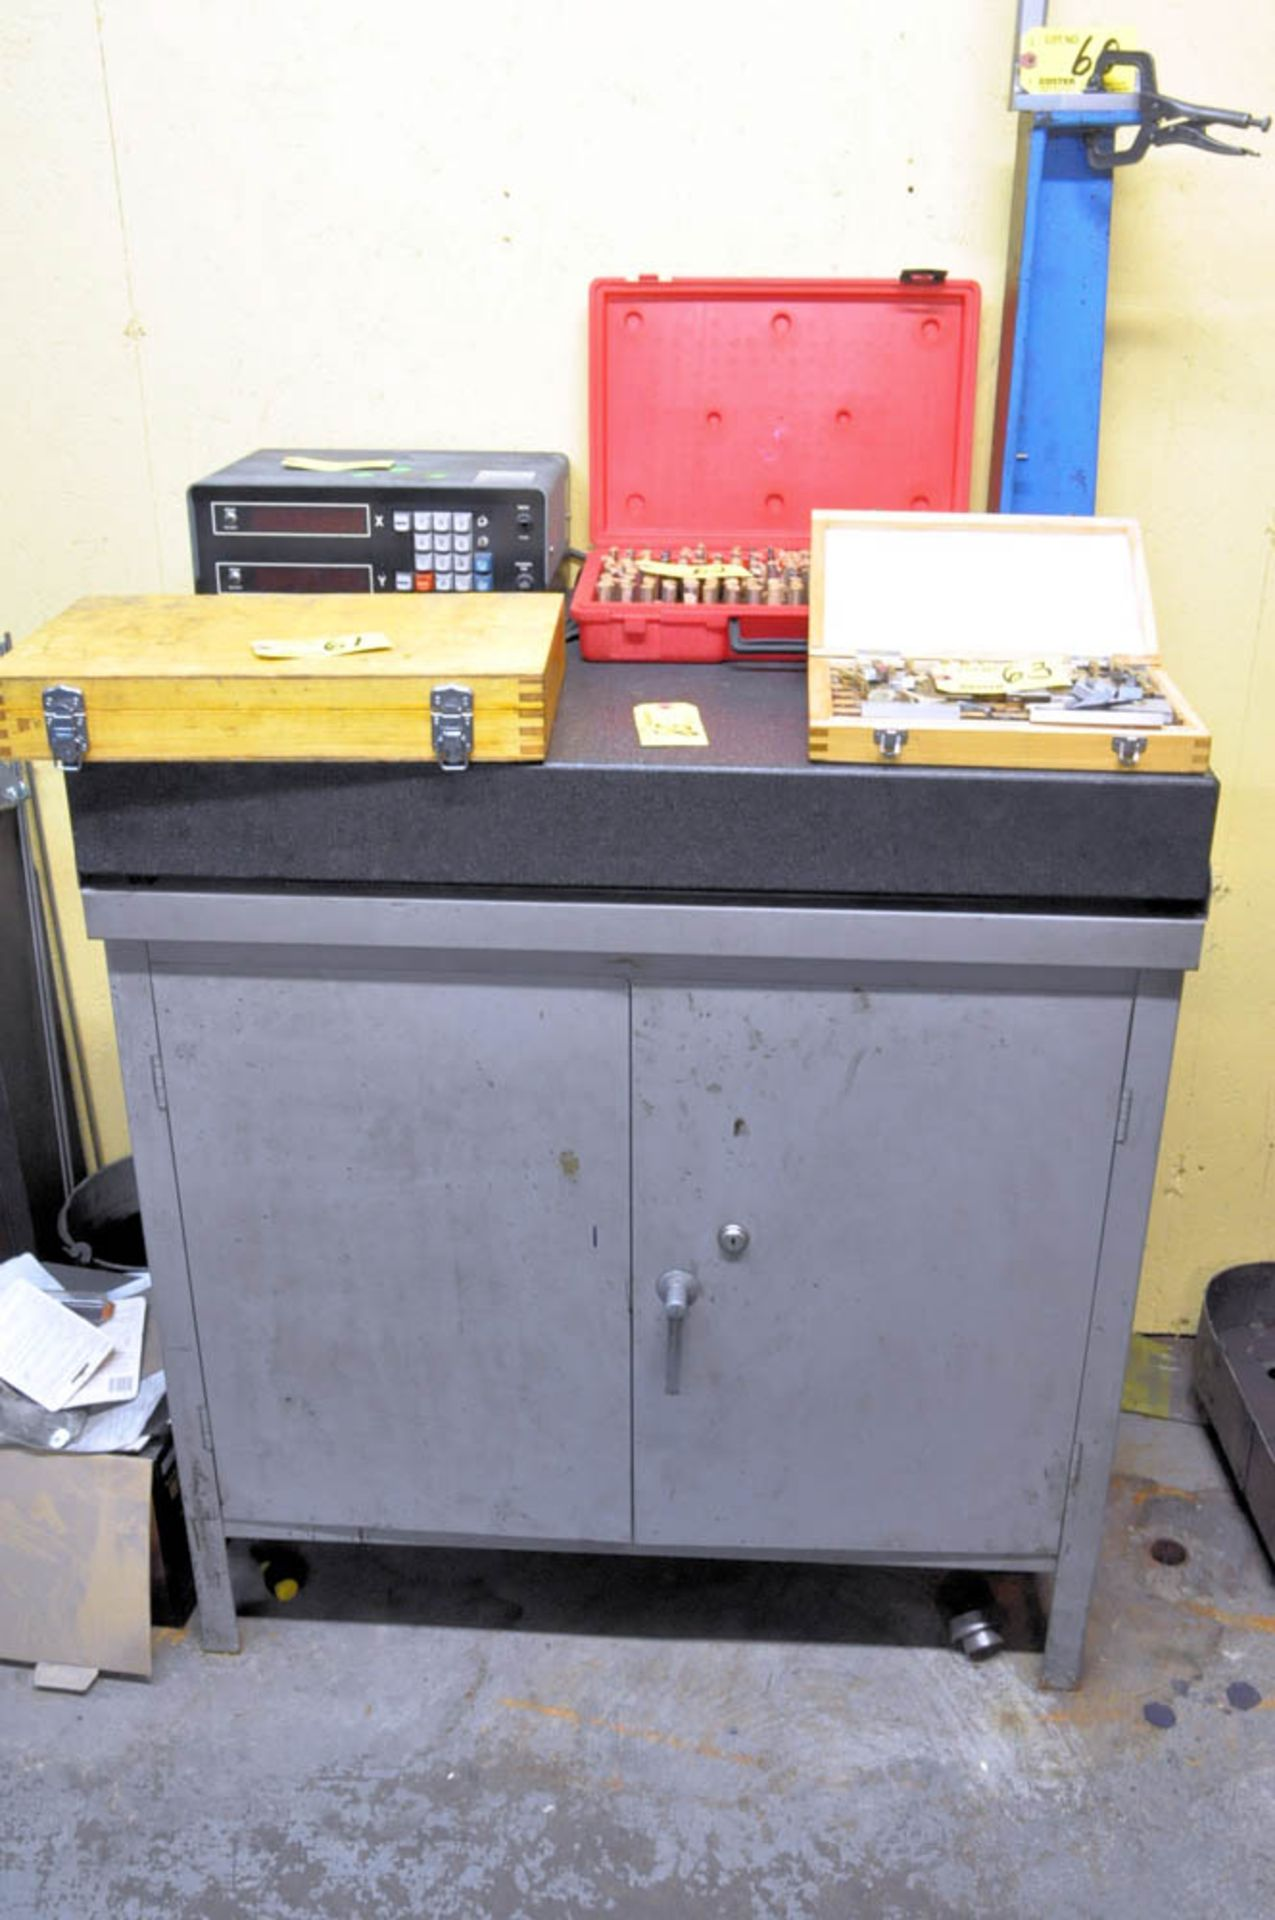 """24"""" X 36"""" X 4"""" BLACK GRANITE SURFACE PLATE WITH STEEL CABINET STAND, (CONTENTS NOT INCLUDED)"""